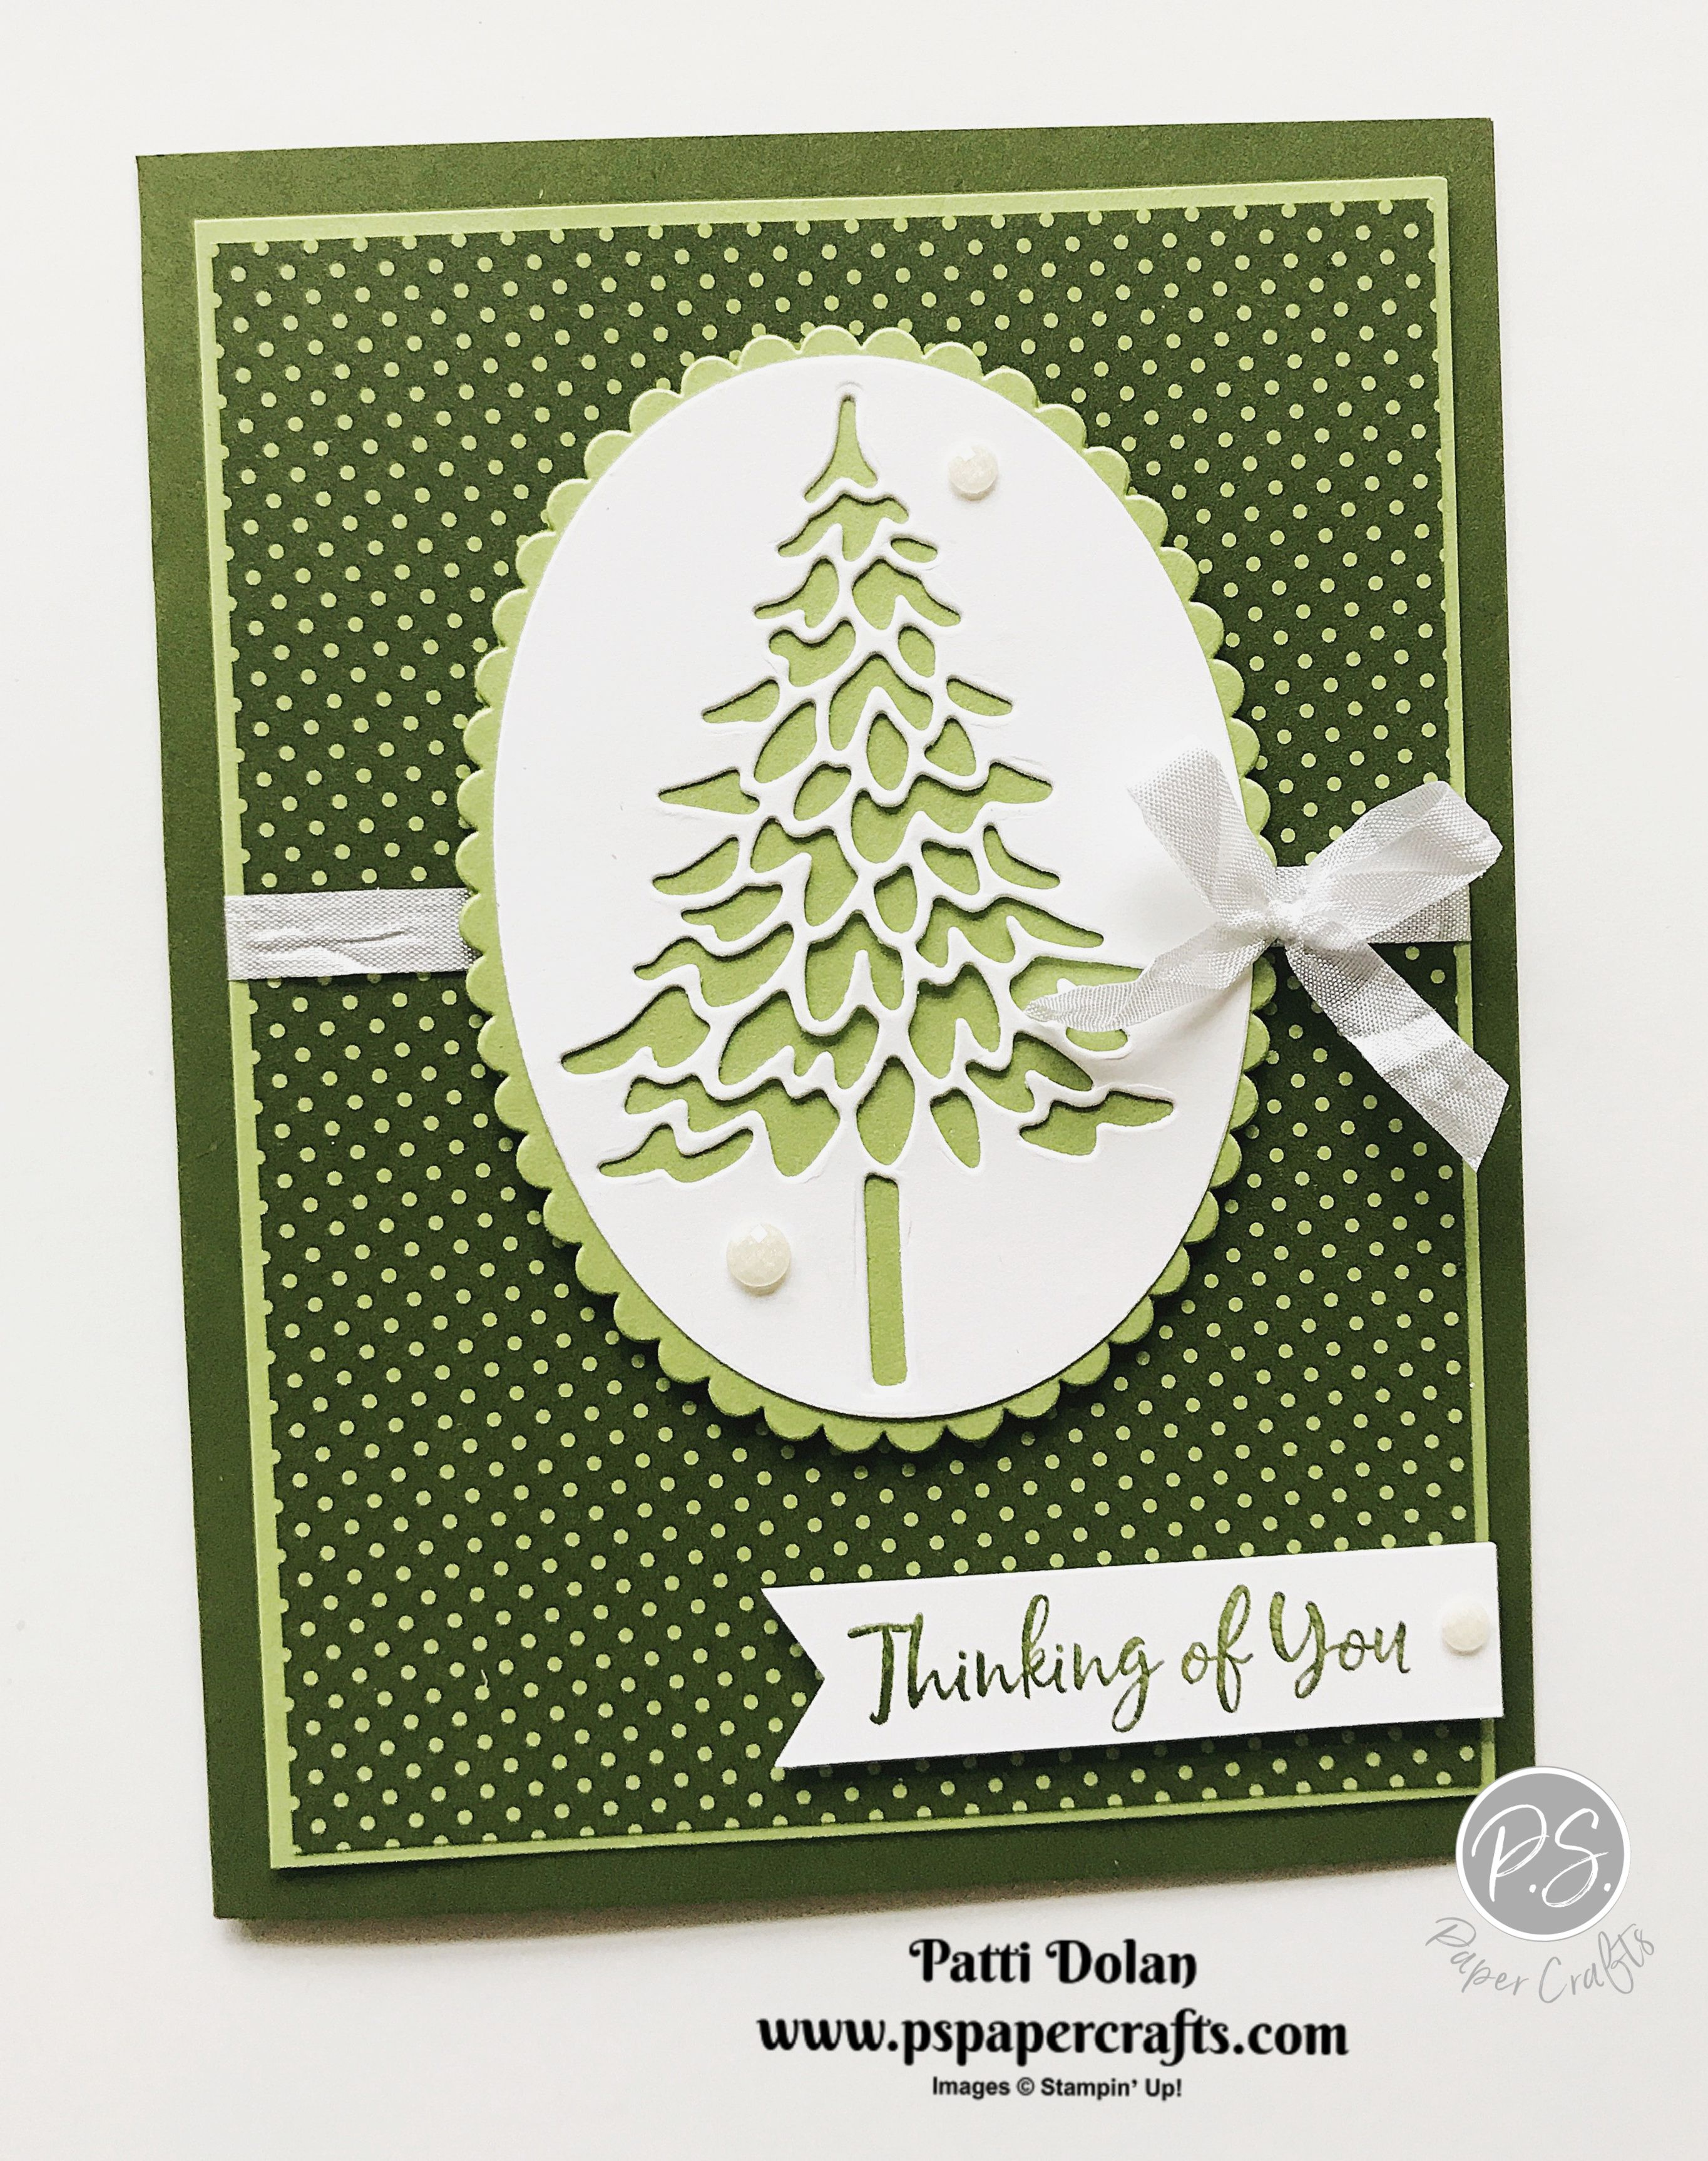 Handmade Cards Using 2020 Christmas Dsp From Stampin Up In The Pines   Thinking Of You — P.S. Paper Crafts in 2020